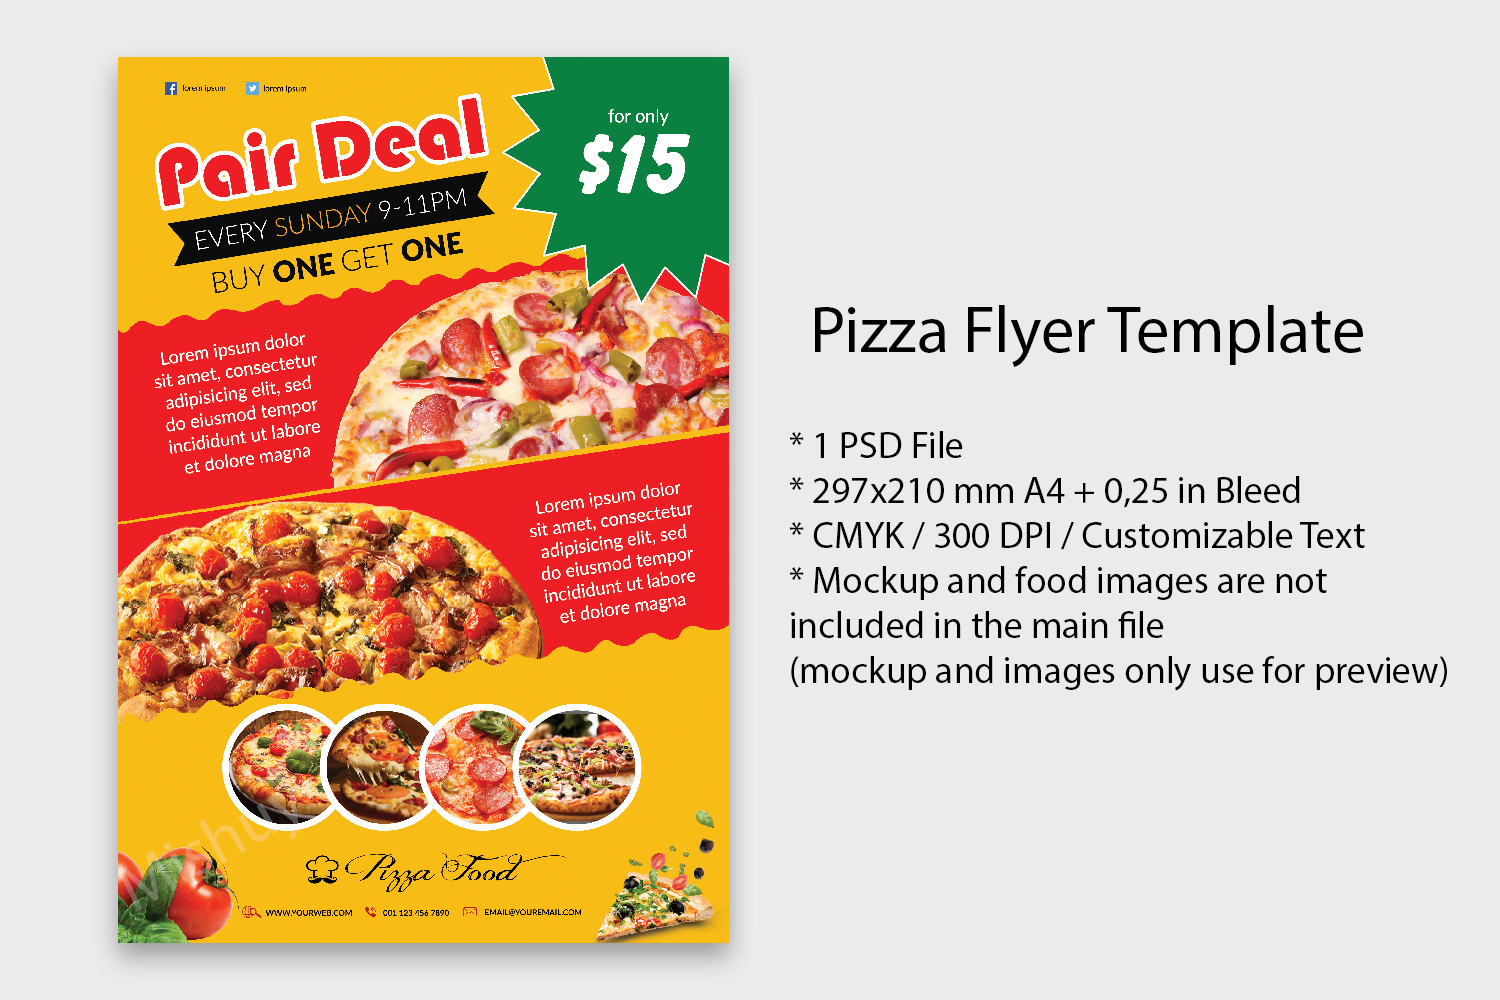 Pizza flyer template example image 1